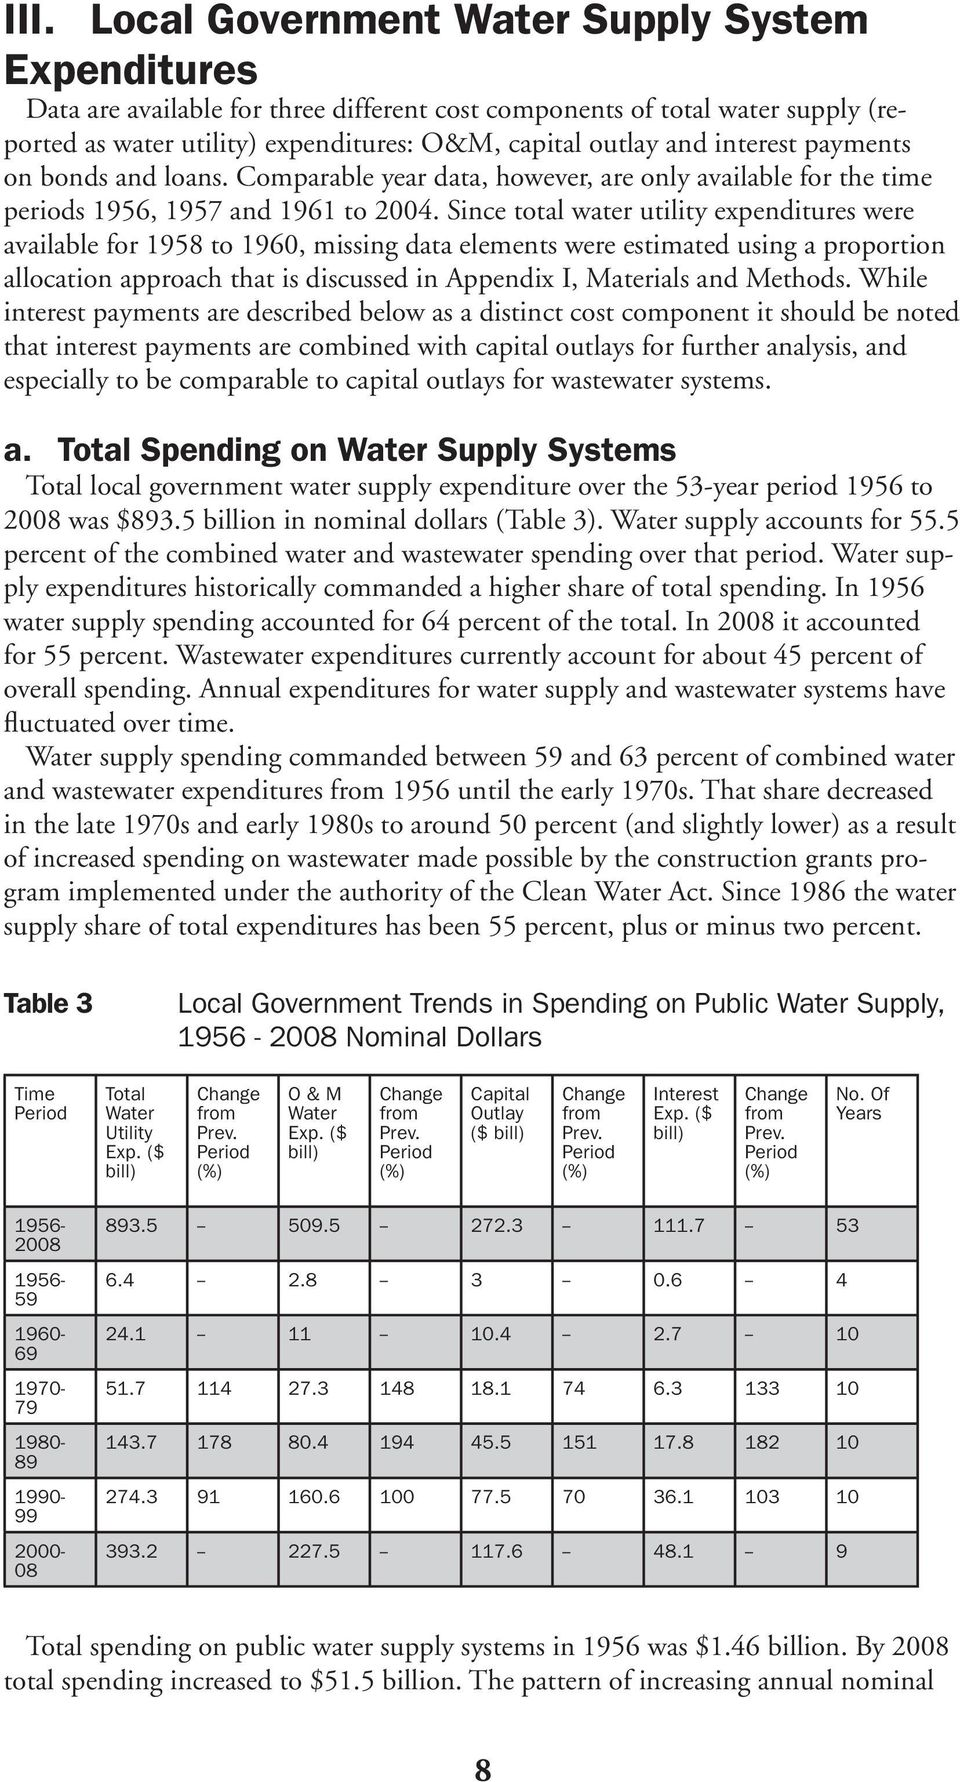 Since total water utility expenditures were available for 1958 to 1960, missing data elements were estimated using a proportion allocation approach that is discussed in Appendix I, Materials and